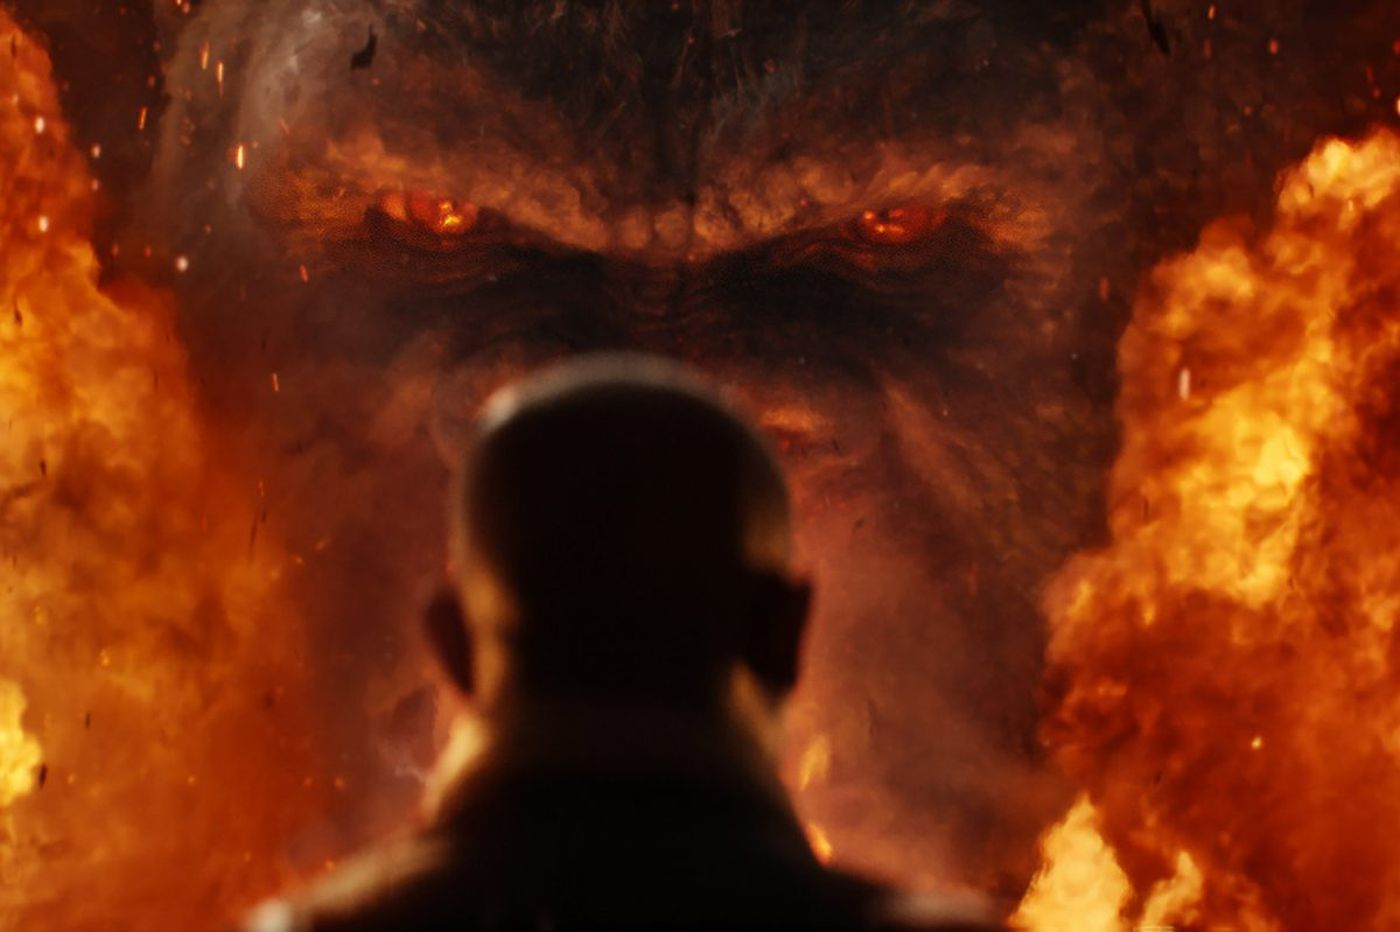 Note to Hollywood effects artists: Stop it with the fire monsters already